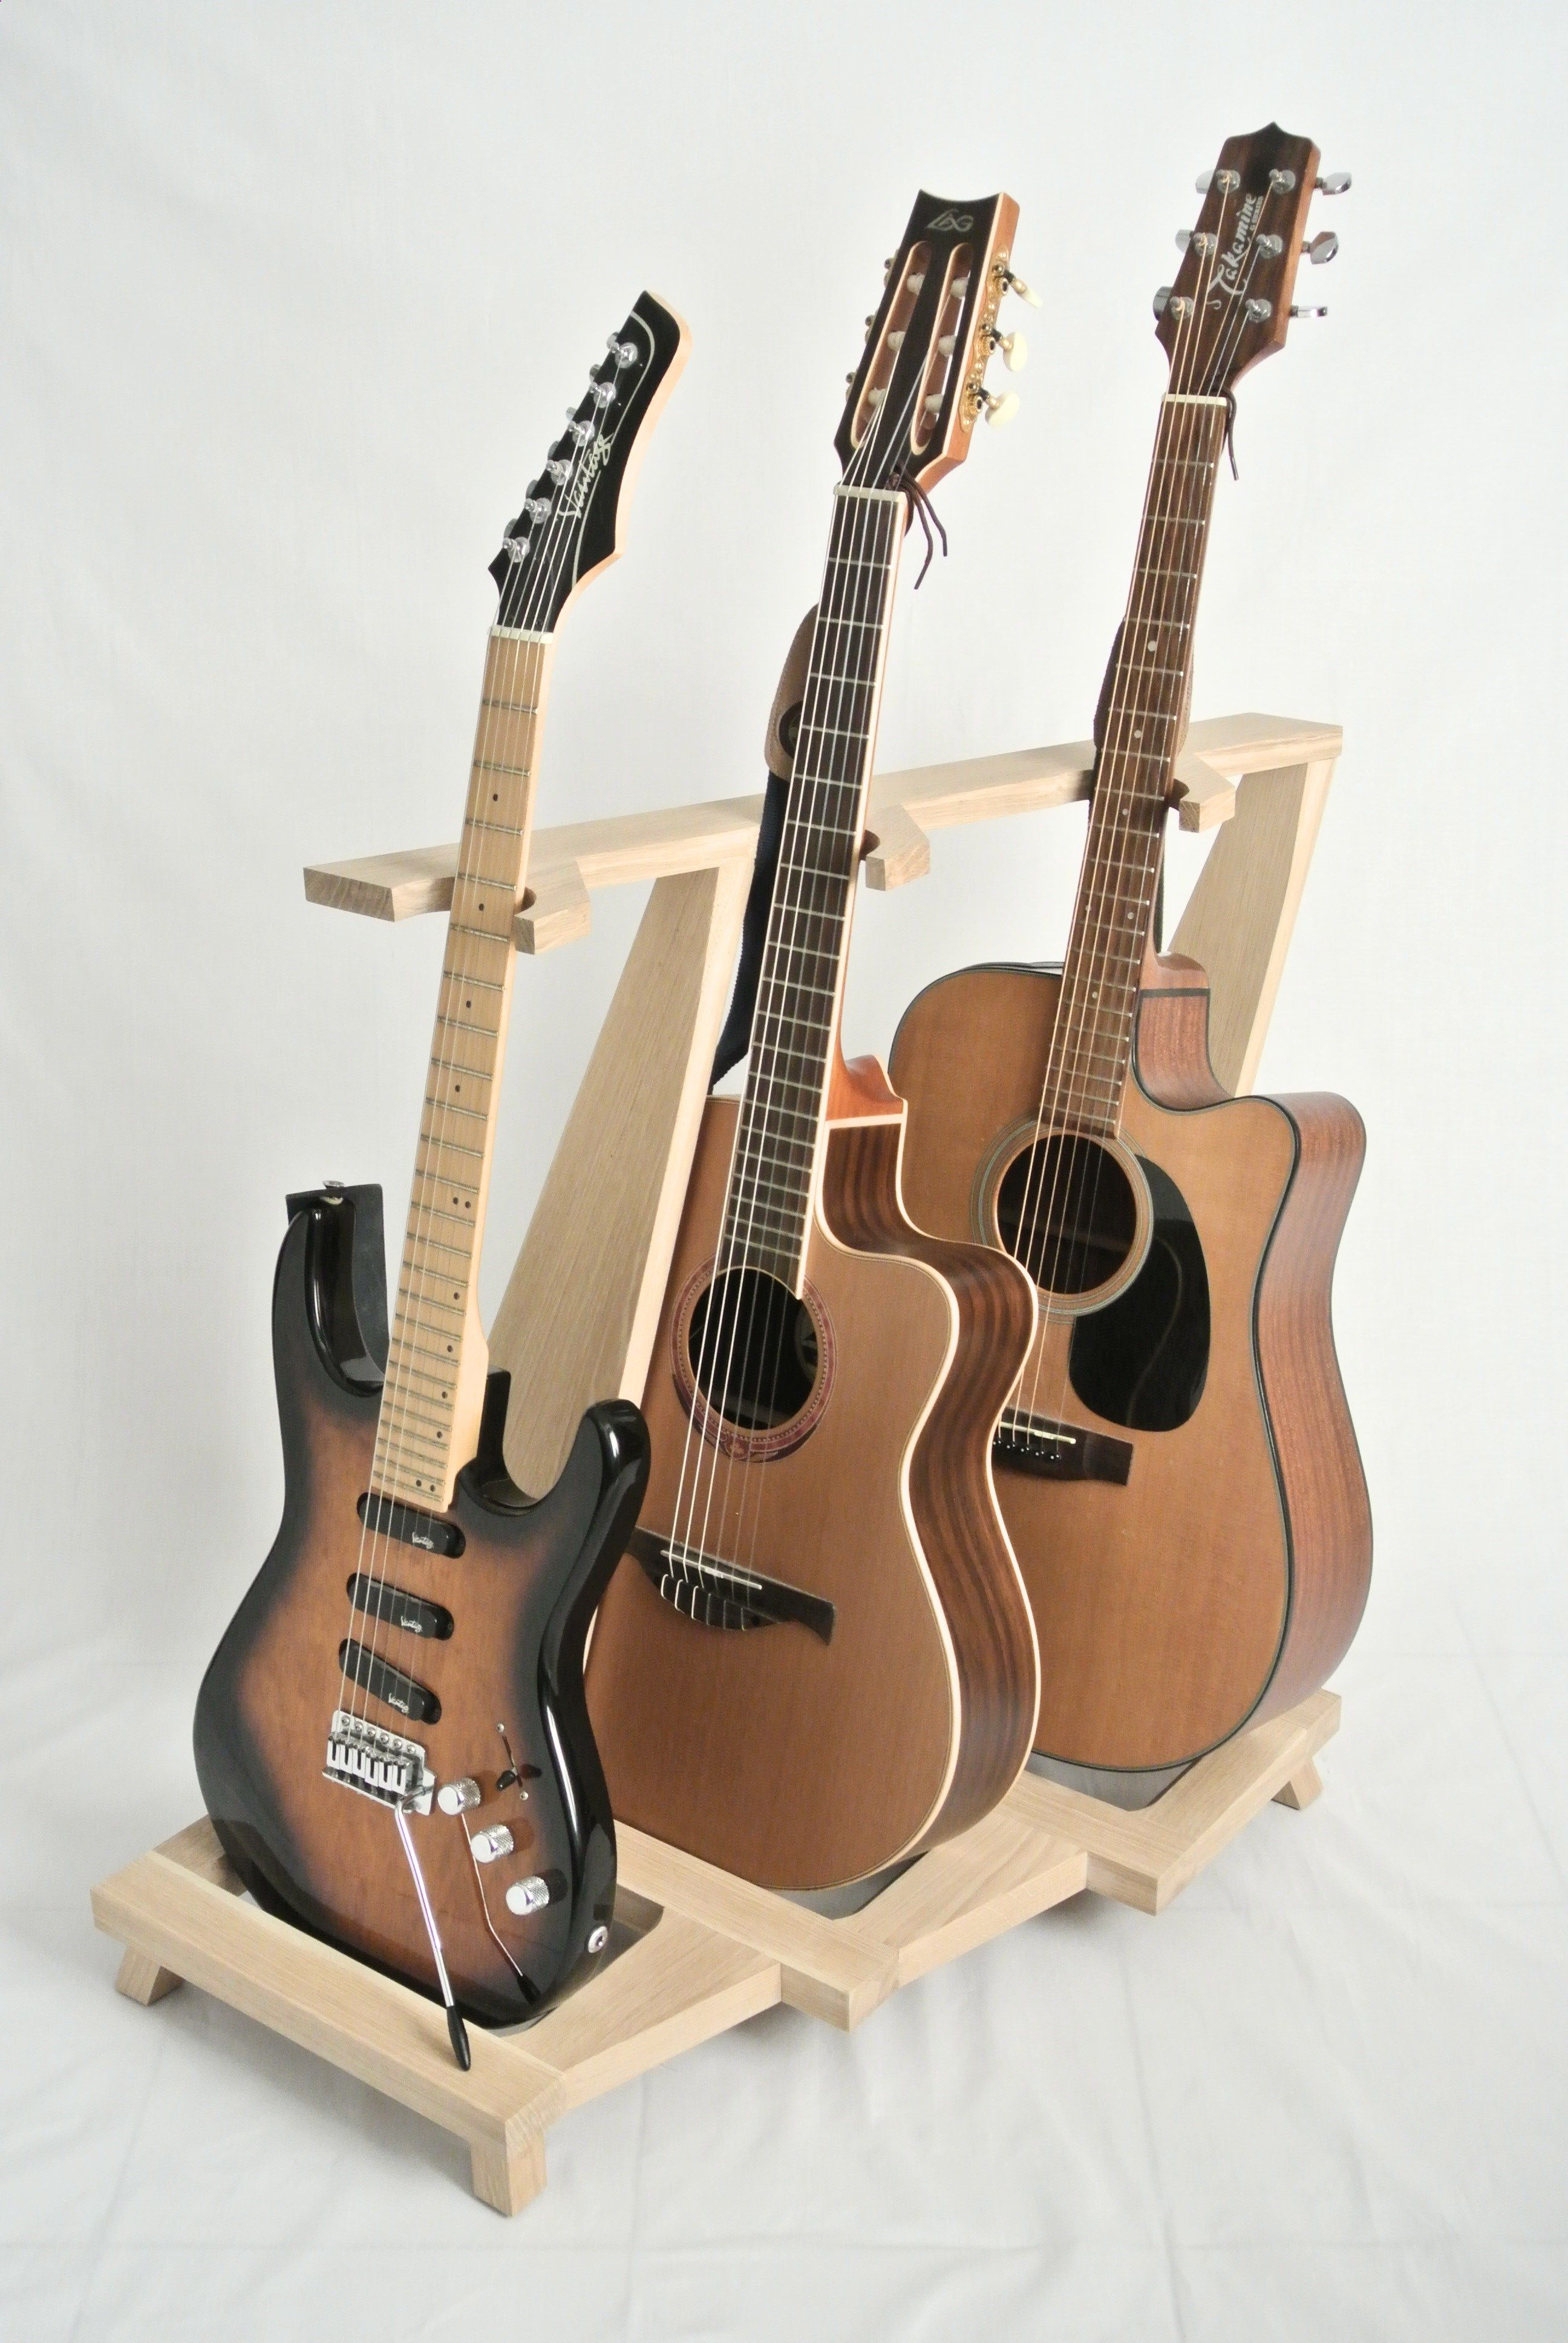 Guitar Stand Made Of Wood With Three Guitars Guitar Stand Guitar